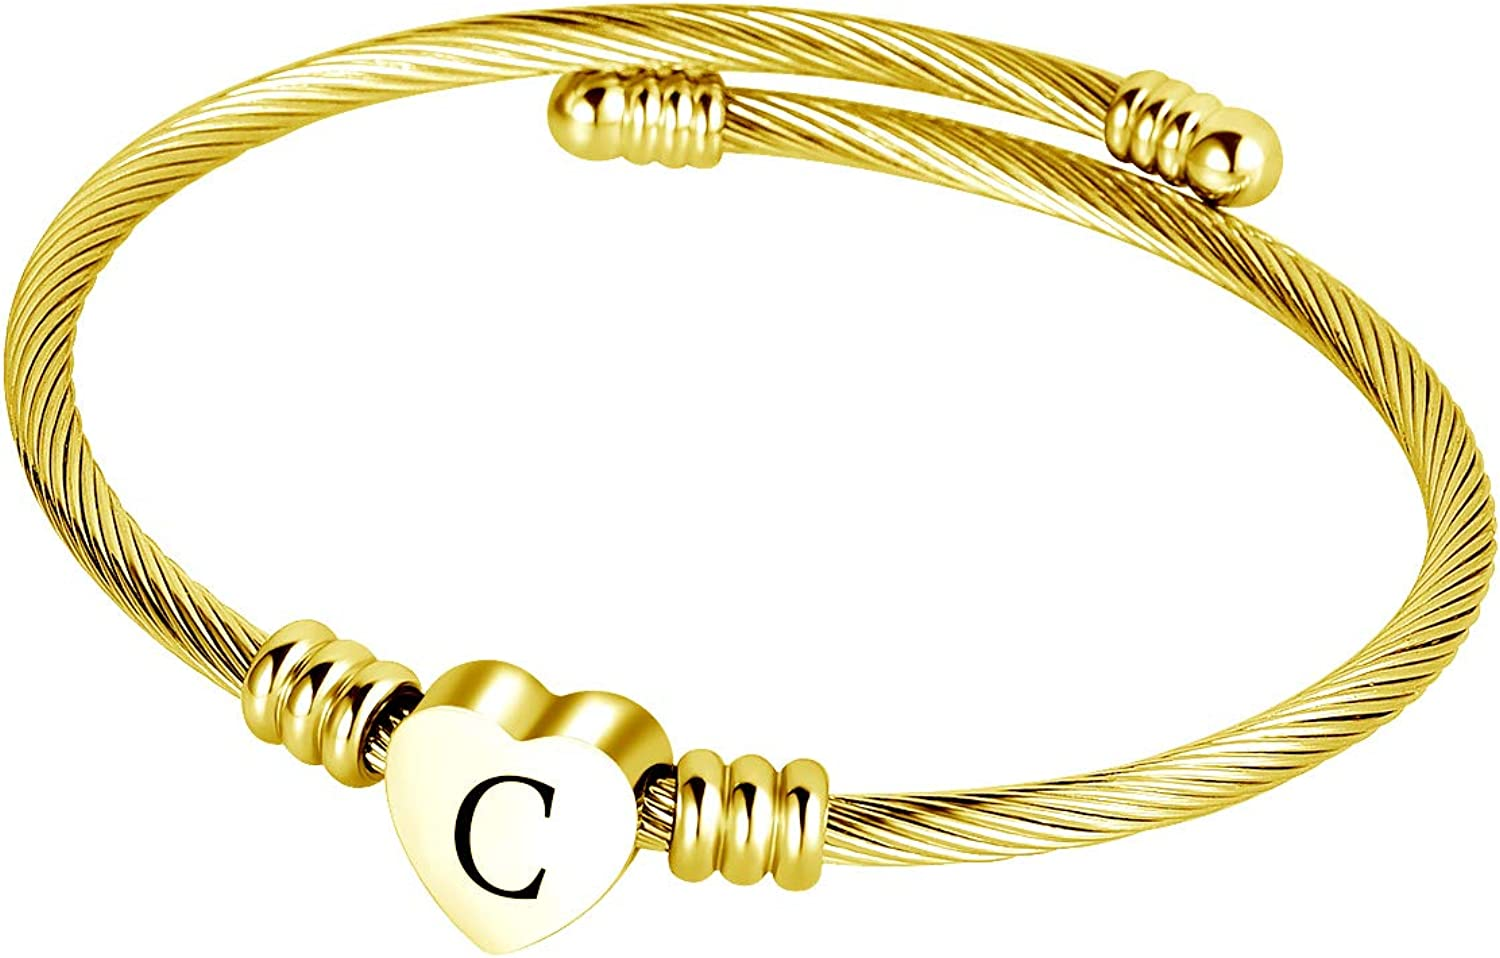 QeenseKc Gold Initial 26 Letters Heart Charm Bracelet Name Cuff Stainless Steel Expandable Bangle Wrist for Women